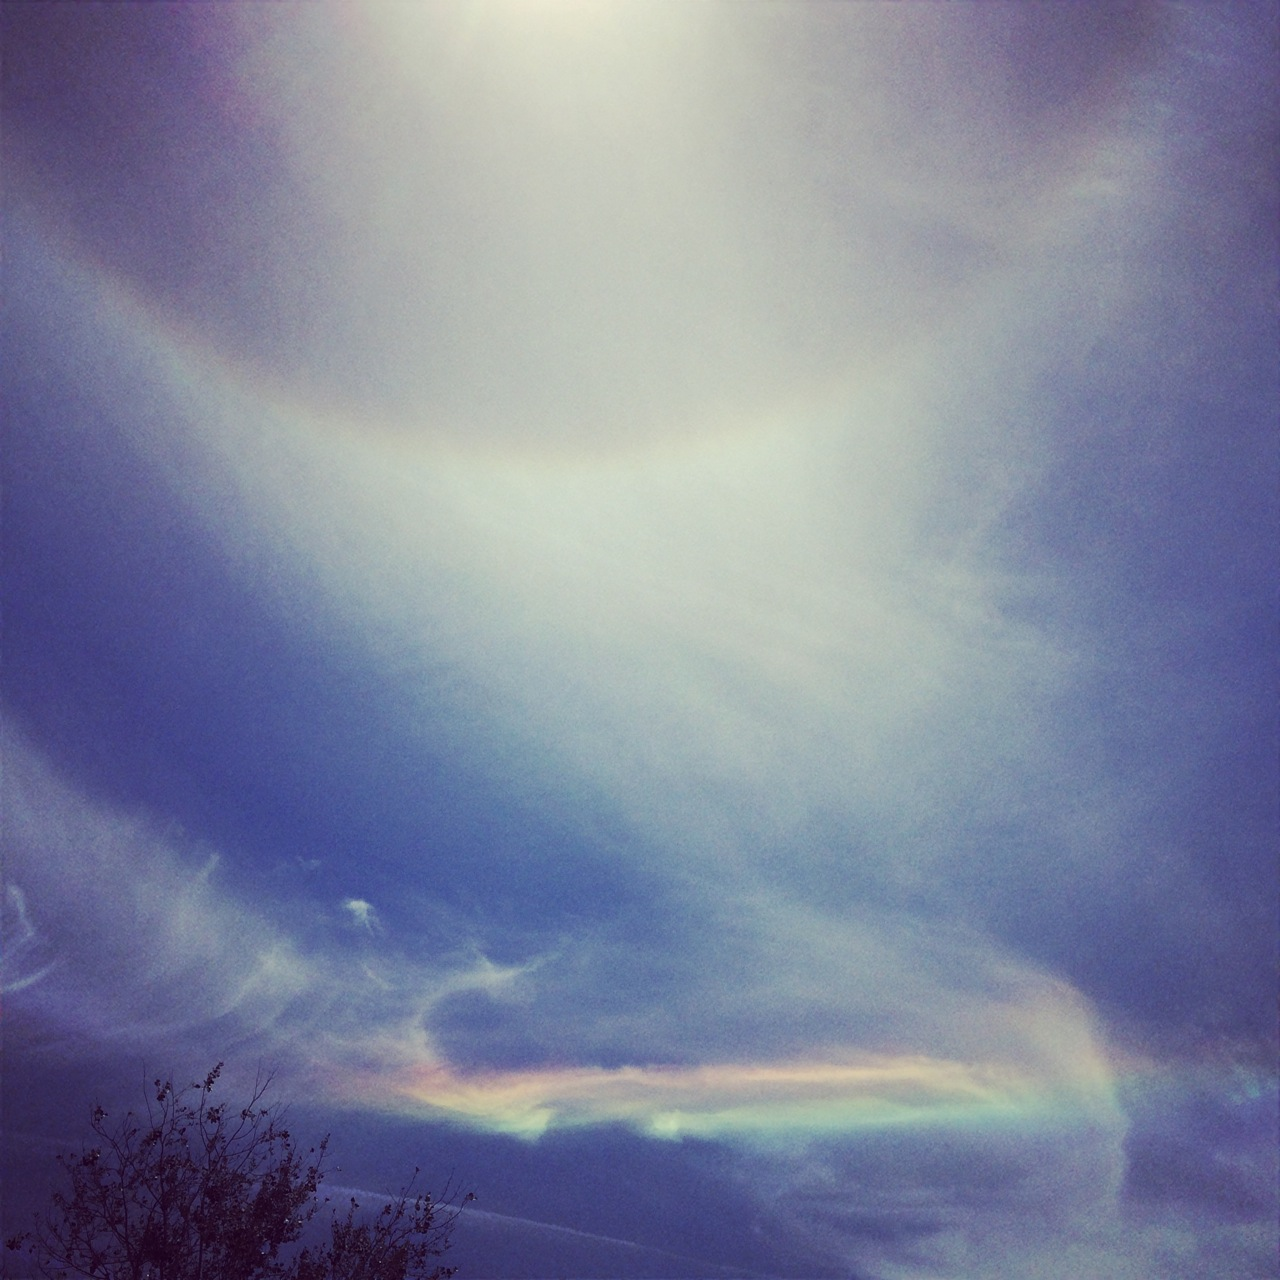 SkyRainbow-photo-by-Yvonne-Condes